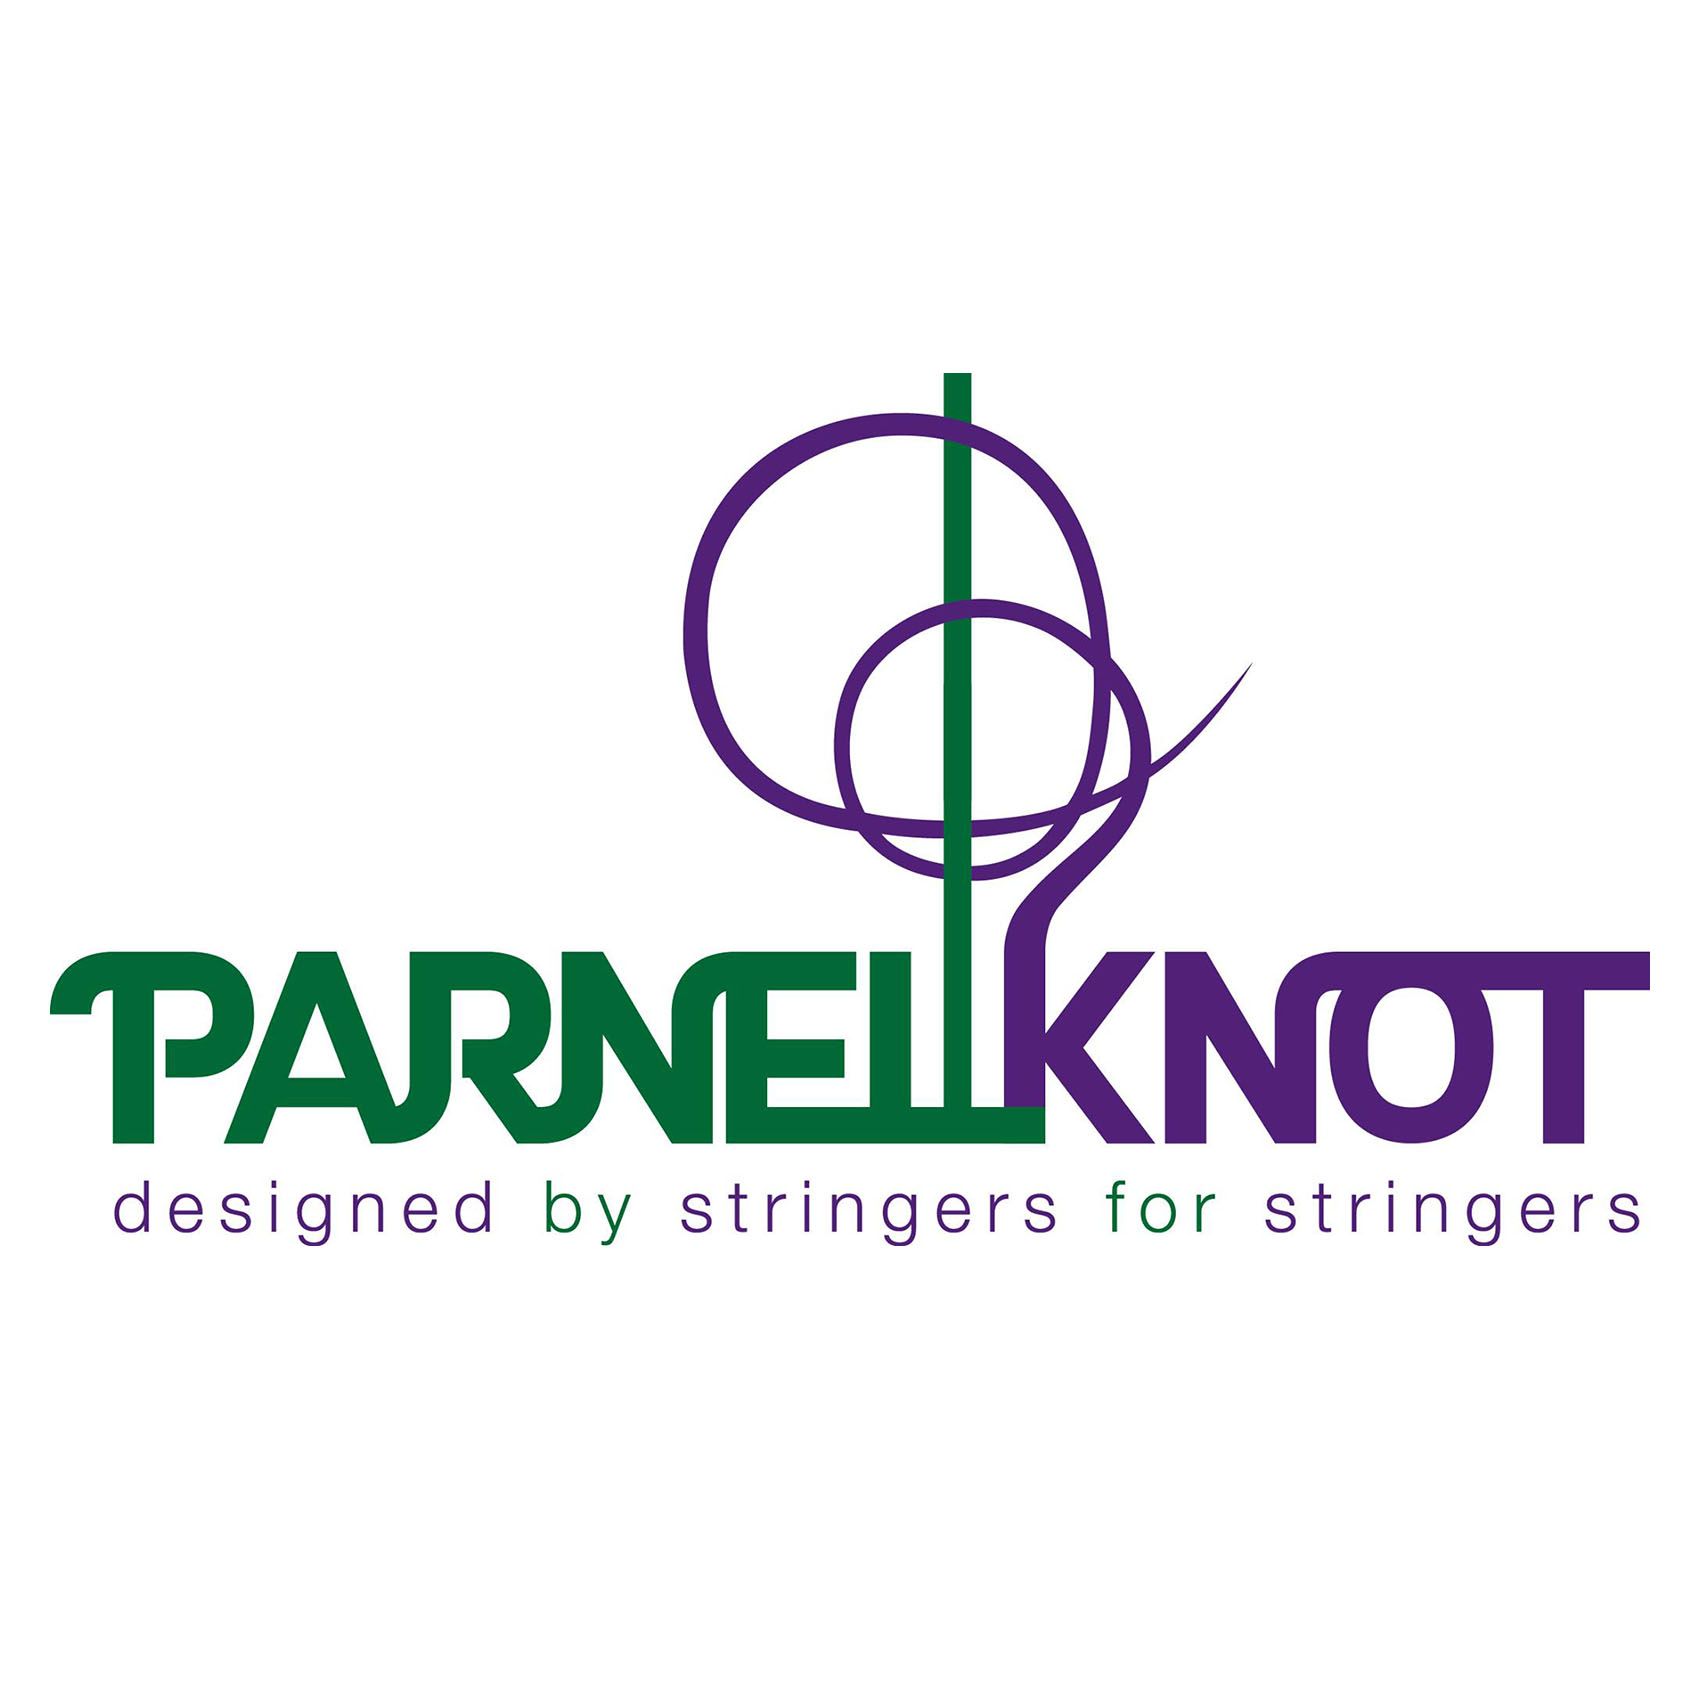 Parnell knot